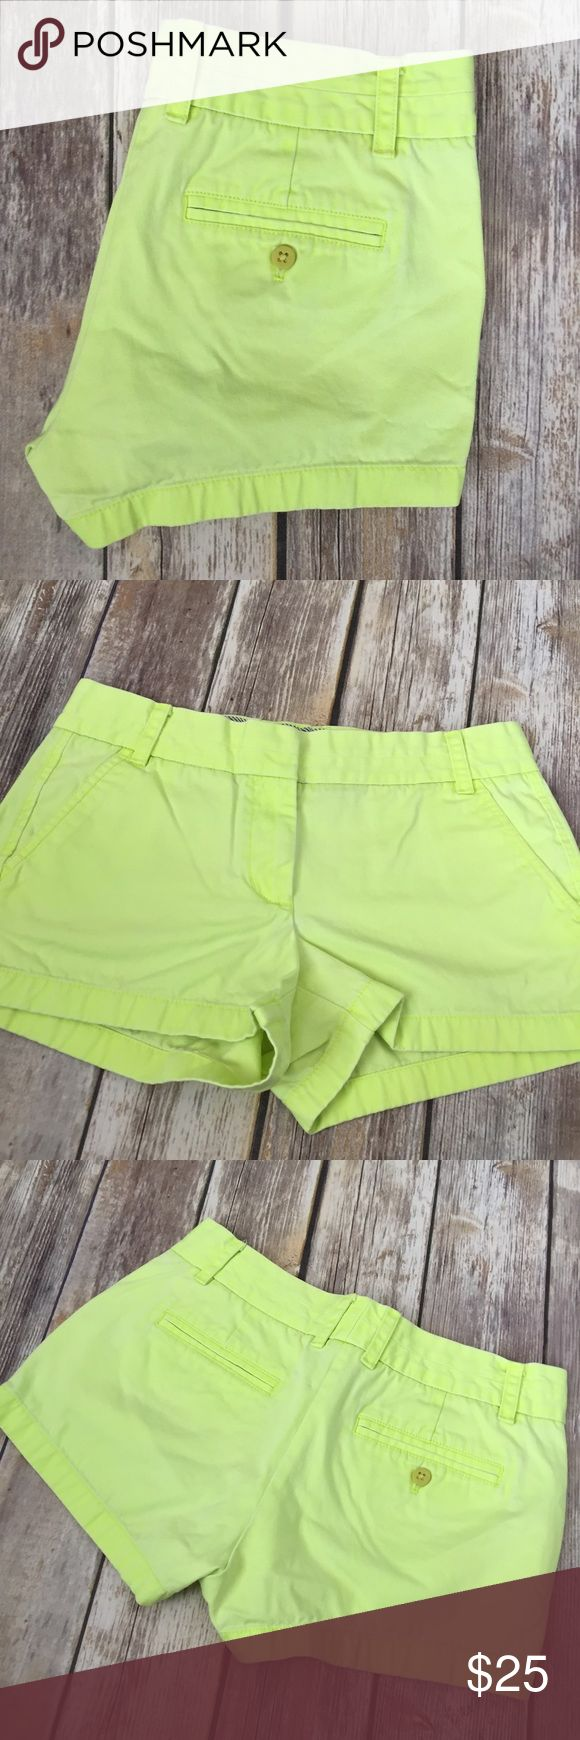 """J Crew Neon Yellow Chino Shorts J Crew """"Broken-In Chino"""" Shorts in neon yellow. Size 4. Very good preowned condition. Inseam is right at 2.75"""". ⚓️No trades or holds. I accept reasonable offers unless the item is priced at $8 or less and then the price is FIRM. I only negotiate through the offer button. 🚭🐩B1 J. Crew Shorts"""